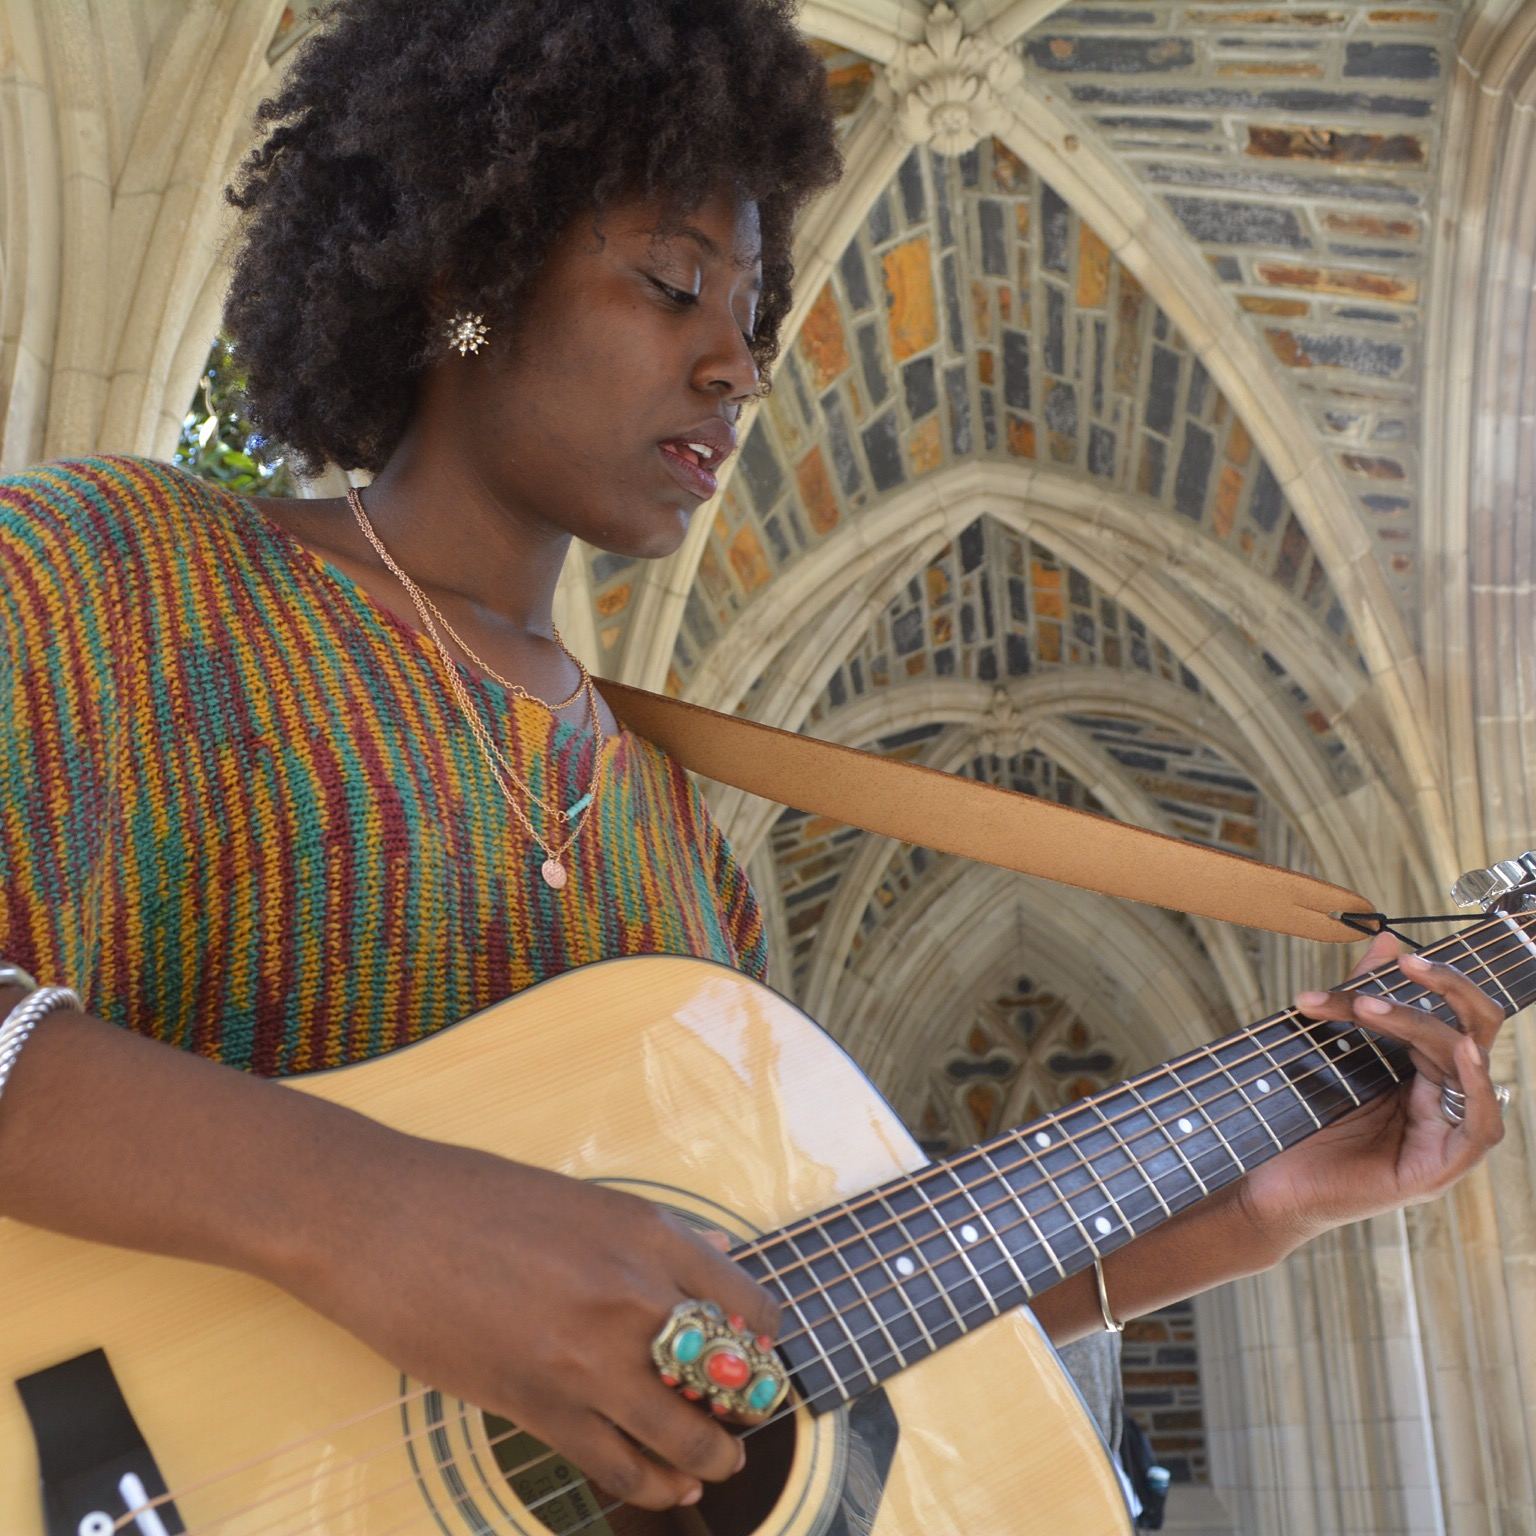 New Voice Mayyadda Brings her Personal and Pointed Songs to Vieux Carre in St Paul, Aug 20